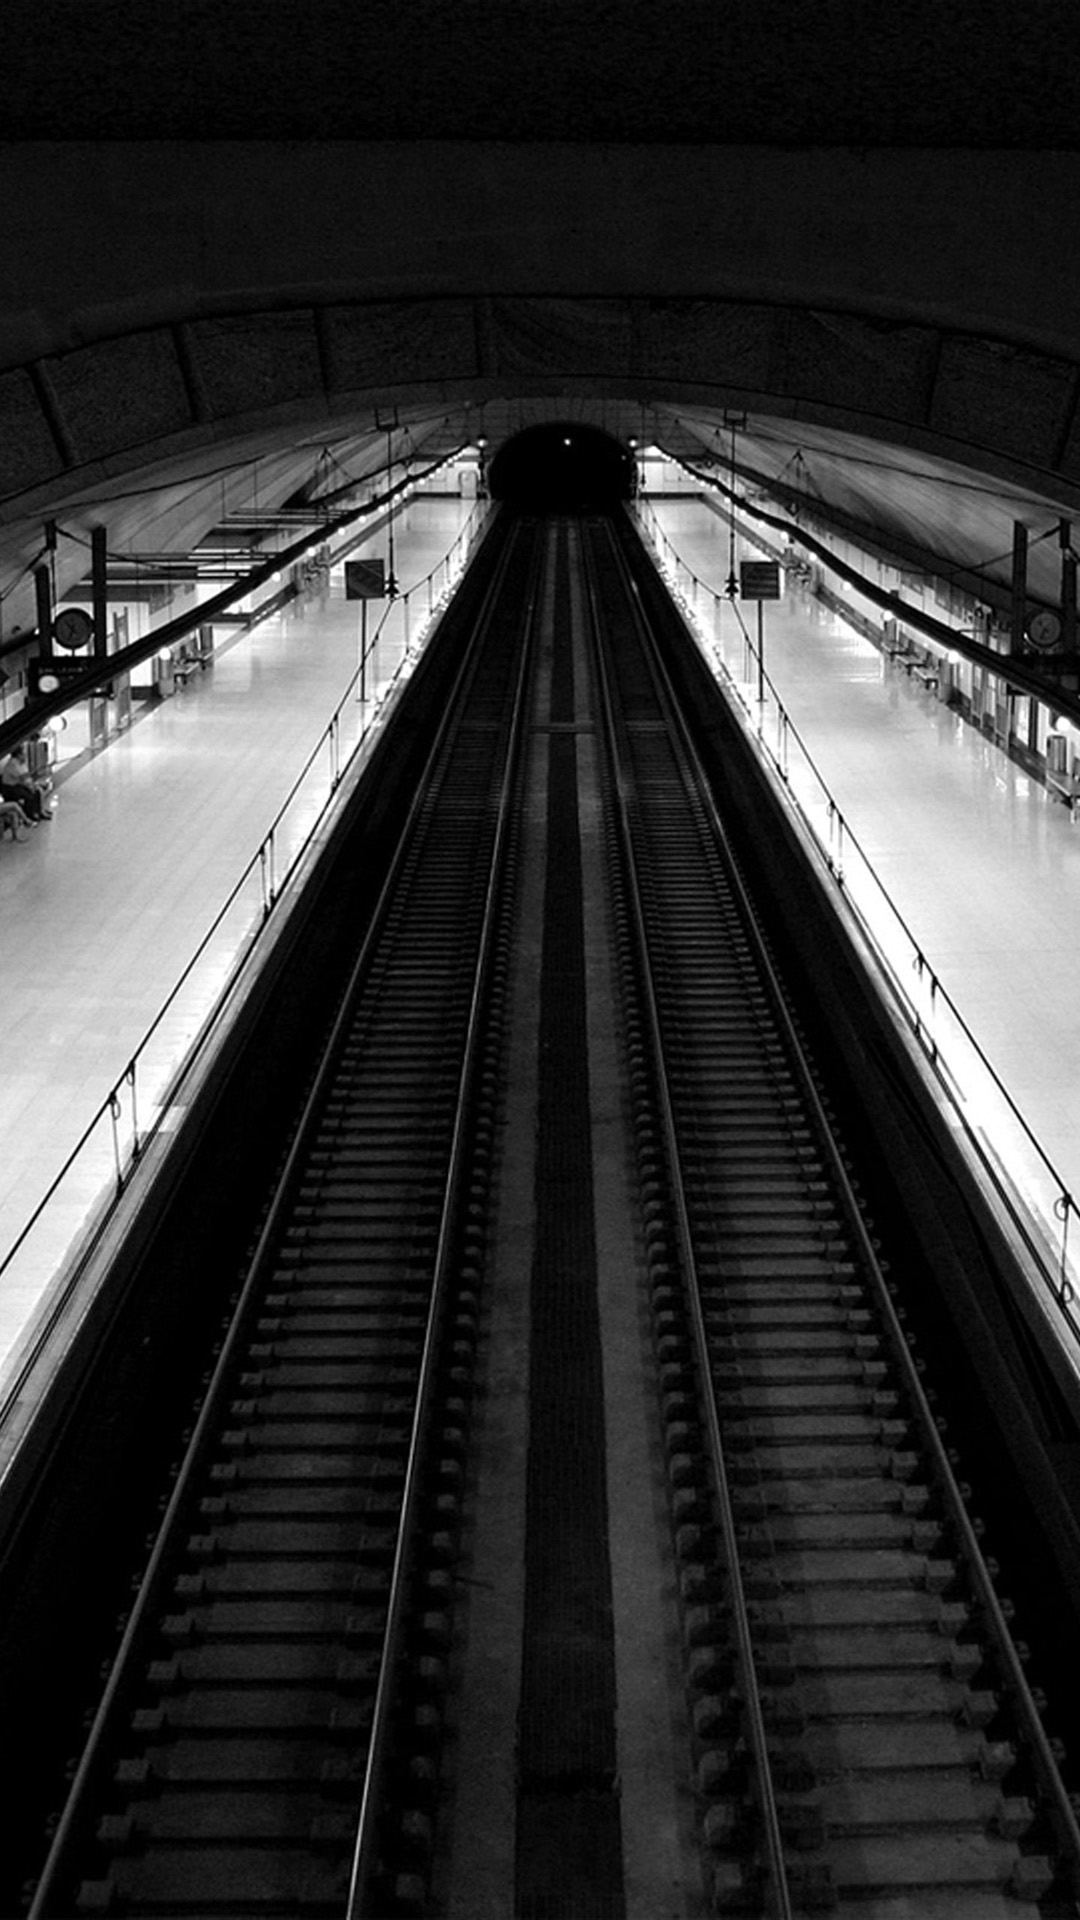 Madrid Subway Black And White Top View iPhone 6 Plus HD Wallpaper